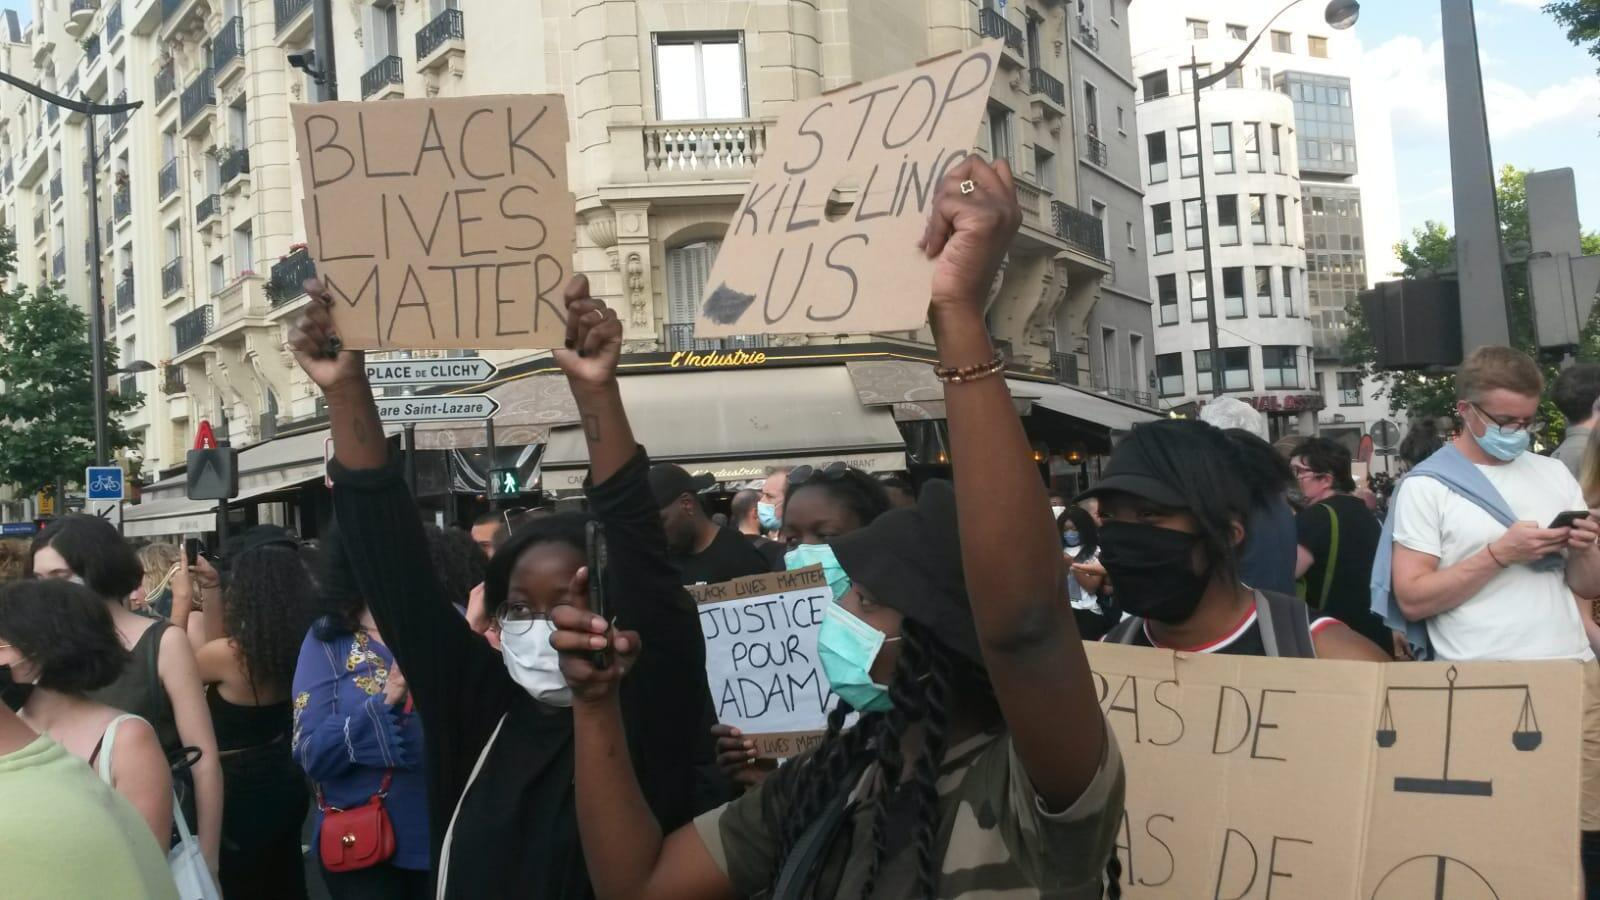 More than 20,000 protesters rallied against police brutality outside the Paris courthouse on June 2, 2020.